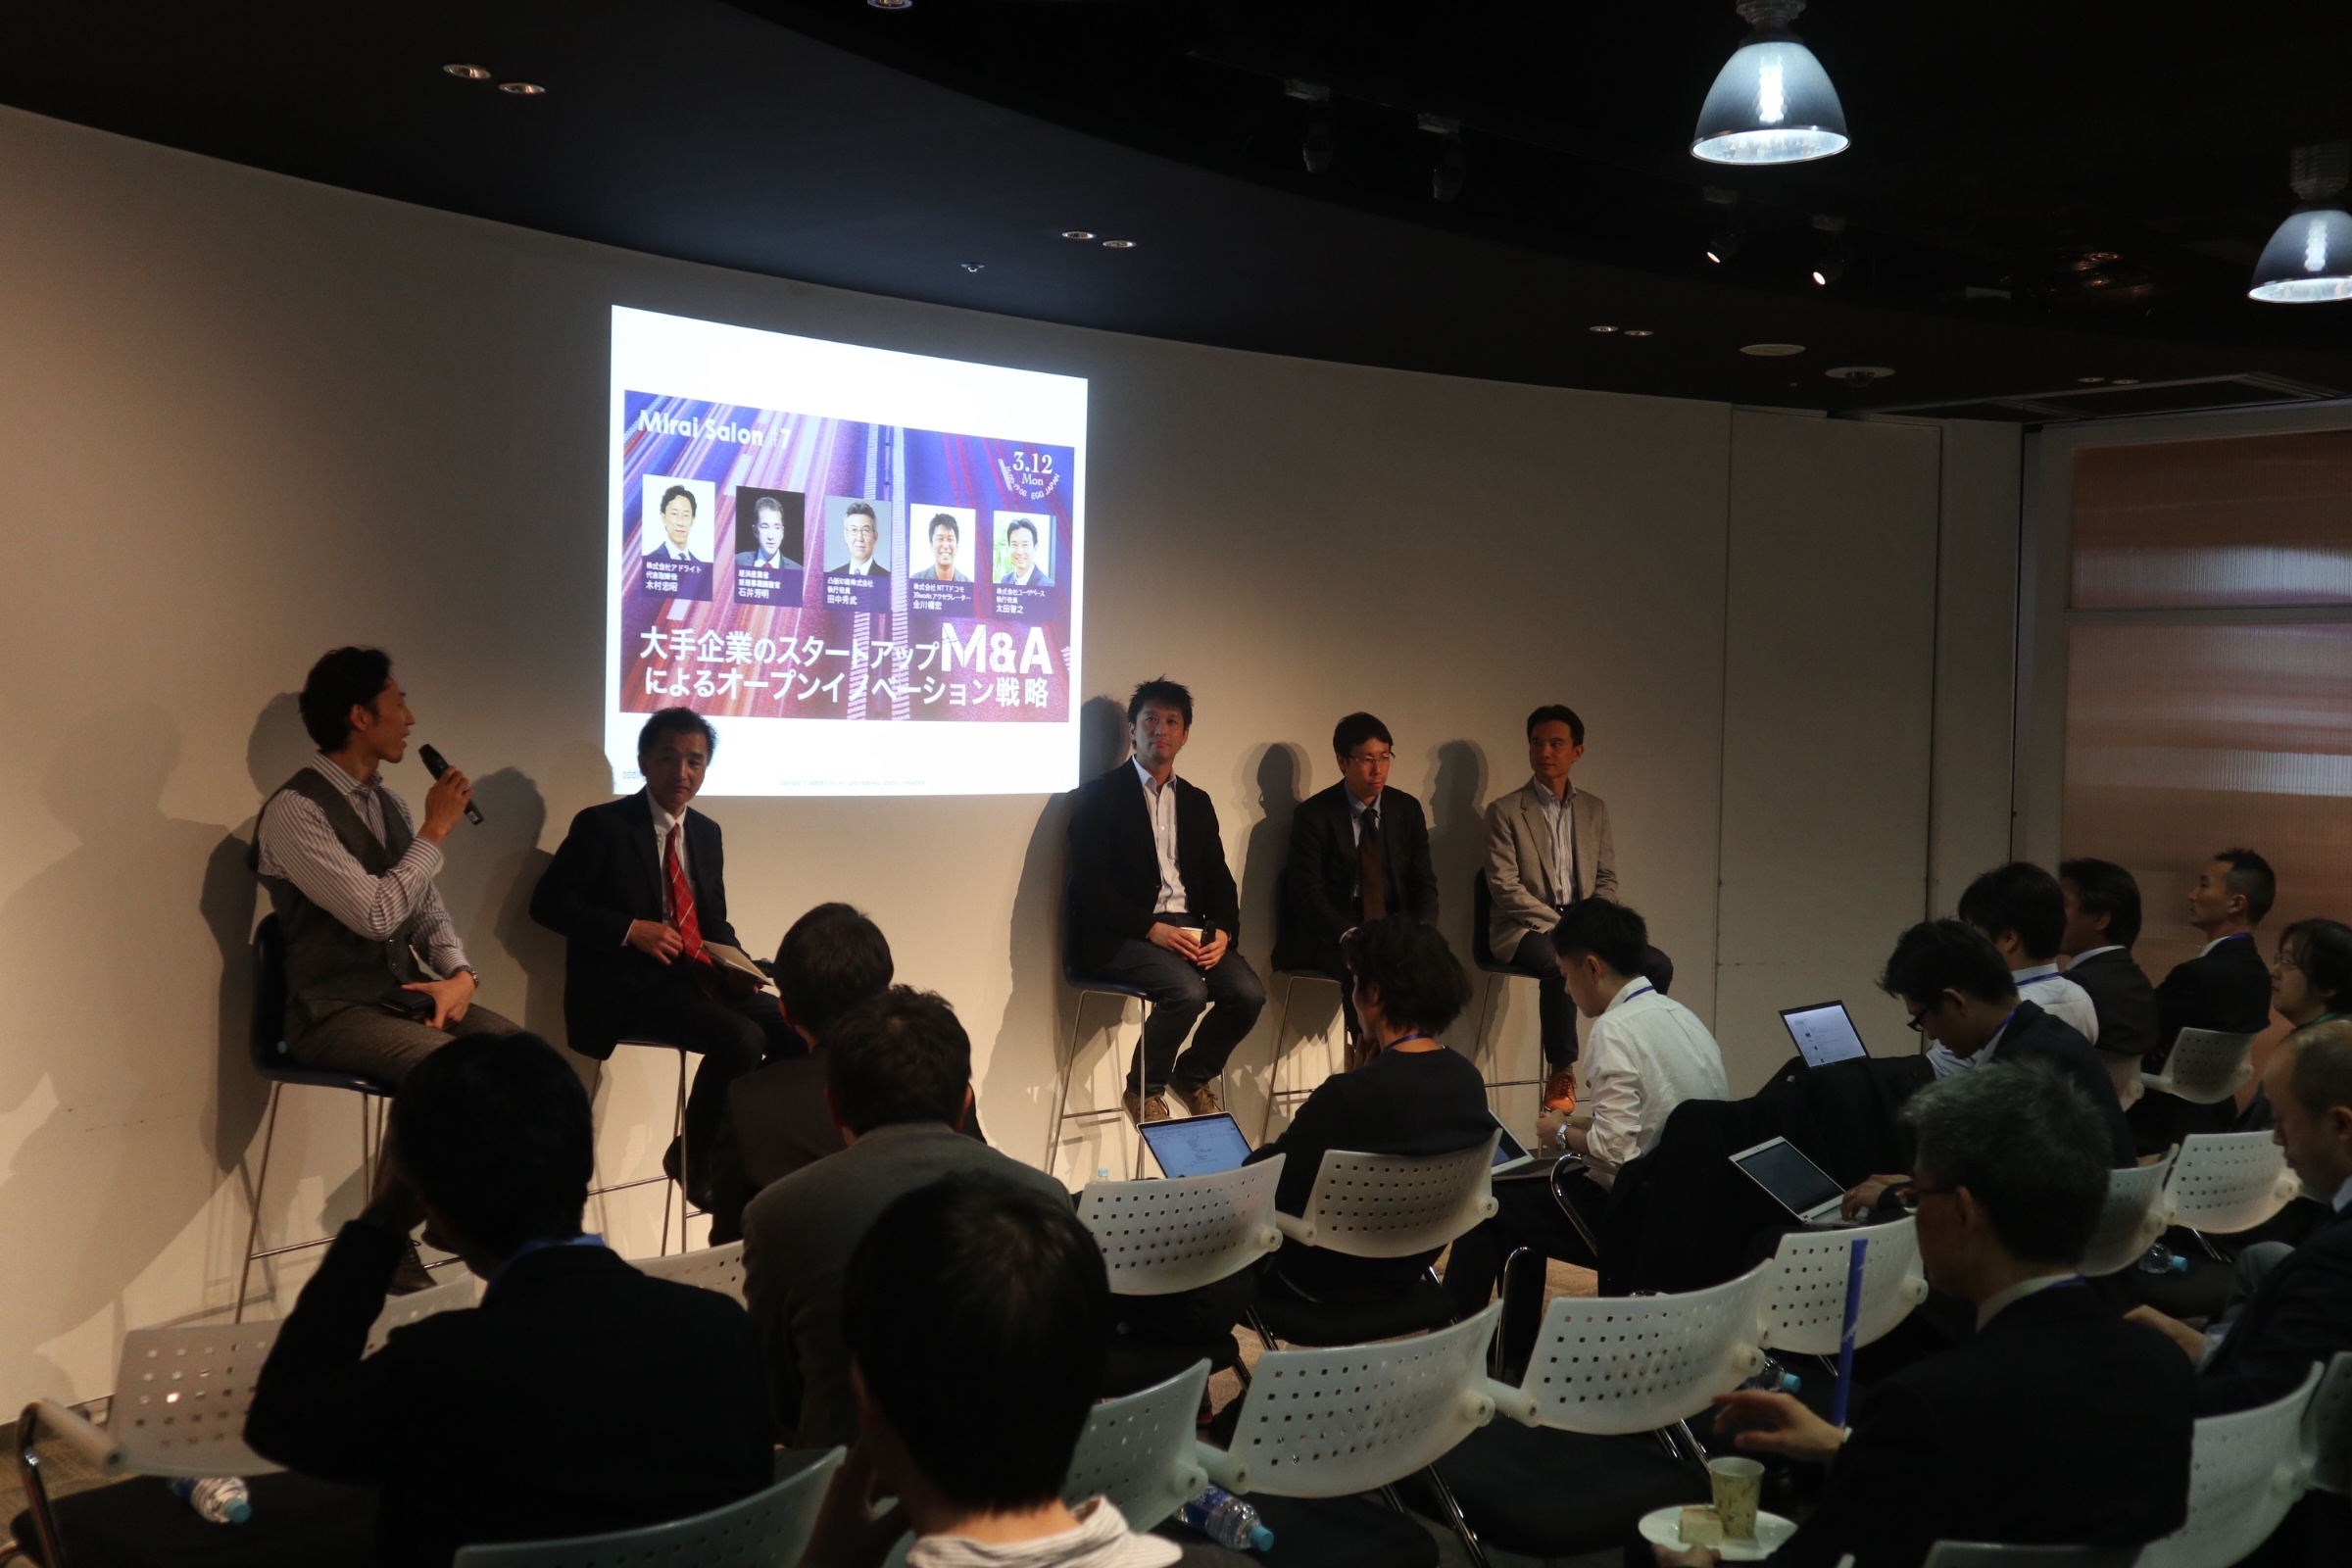 Mirai Salon 7 featured four guest speakers who had as their focus the necessity of M&A + Open Innovation collaboration between startups and corporations in Japan's ecosystem. From left: Tadaaki Kimura from addlight, Yoshiaki Ishii from METI, Nobuhiro Kanagawa from 39works, Hiroshi Asada from Toppan, and Tomoyuki Ota from Uzabase